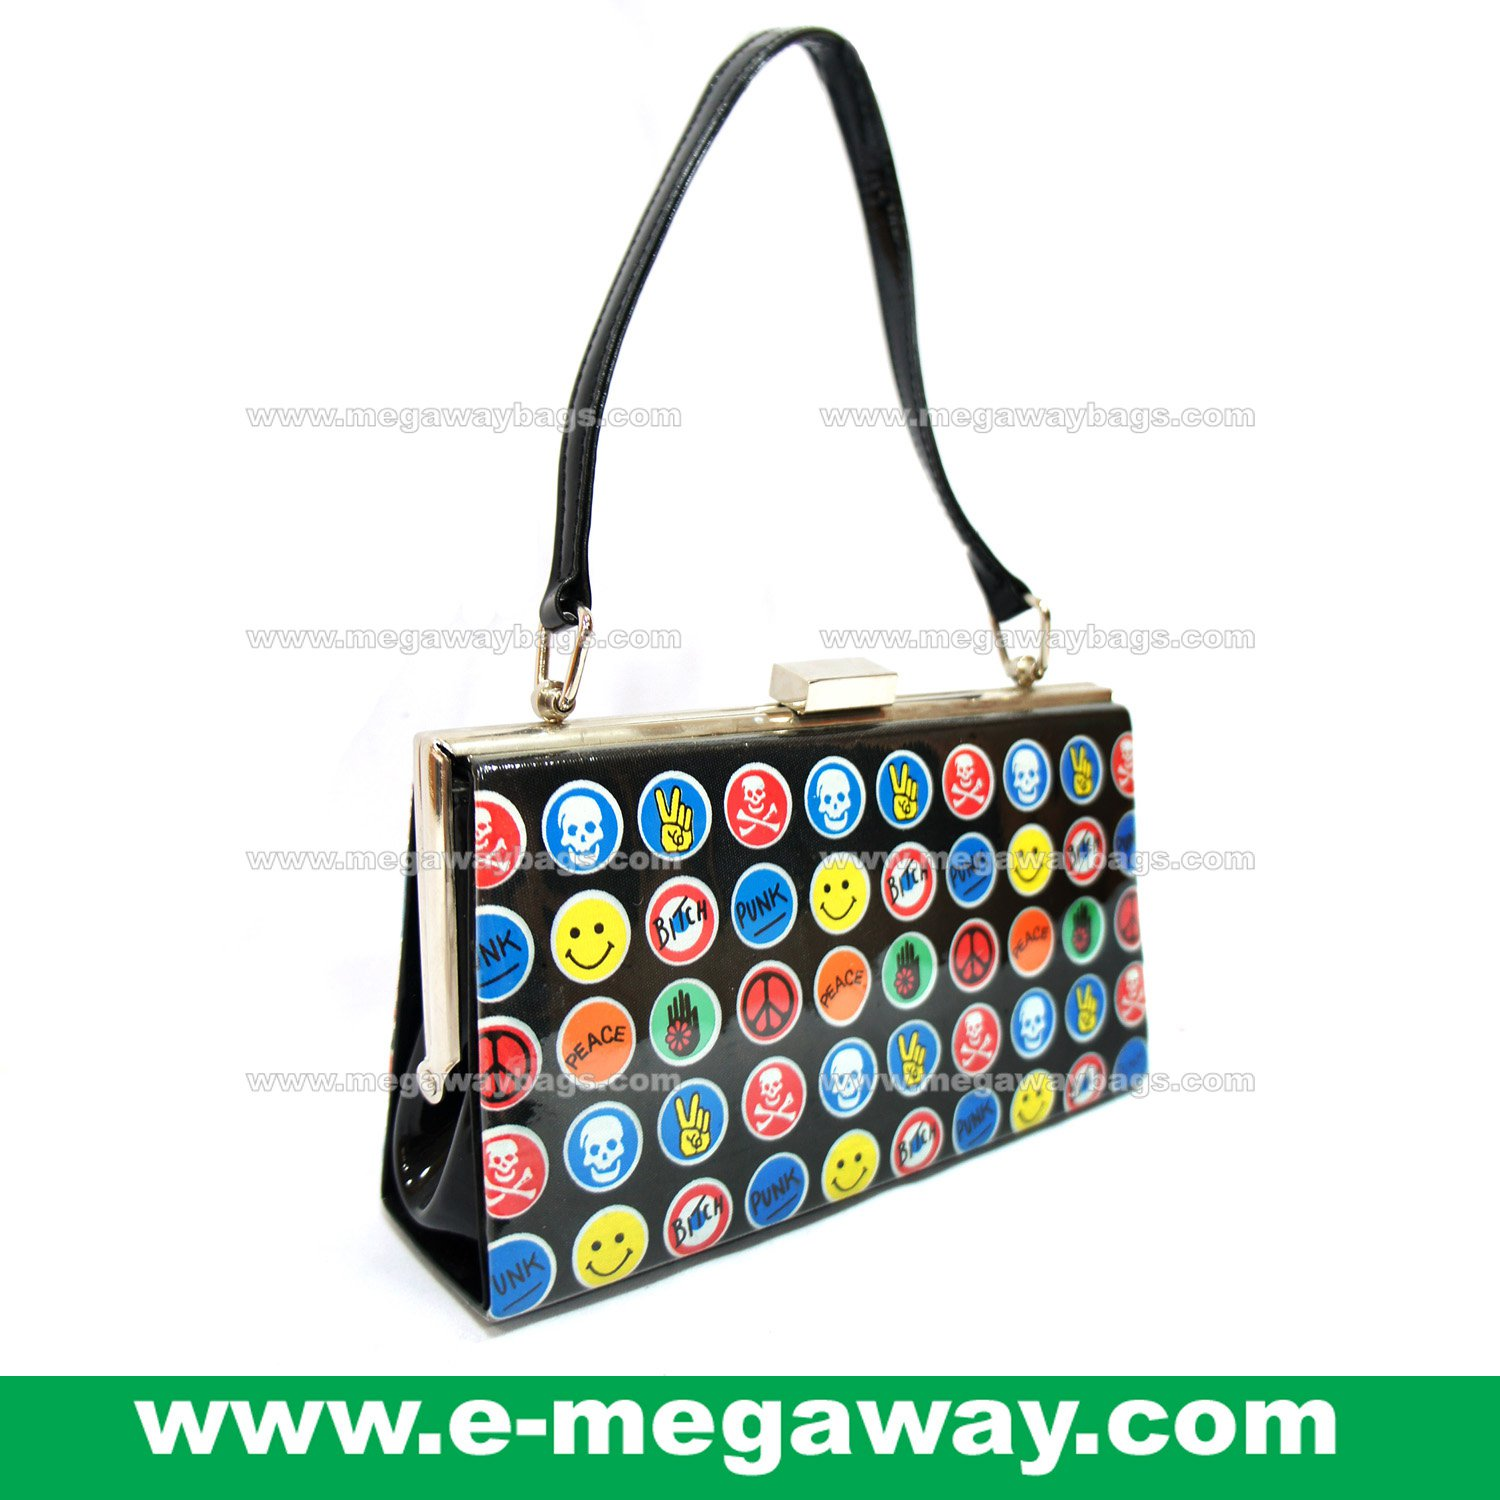 Fashion Handbag Women Handbag MegawayBags #CC- 0670